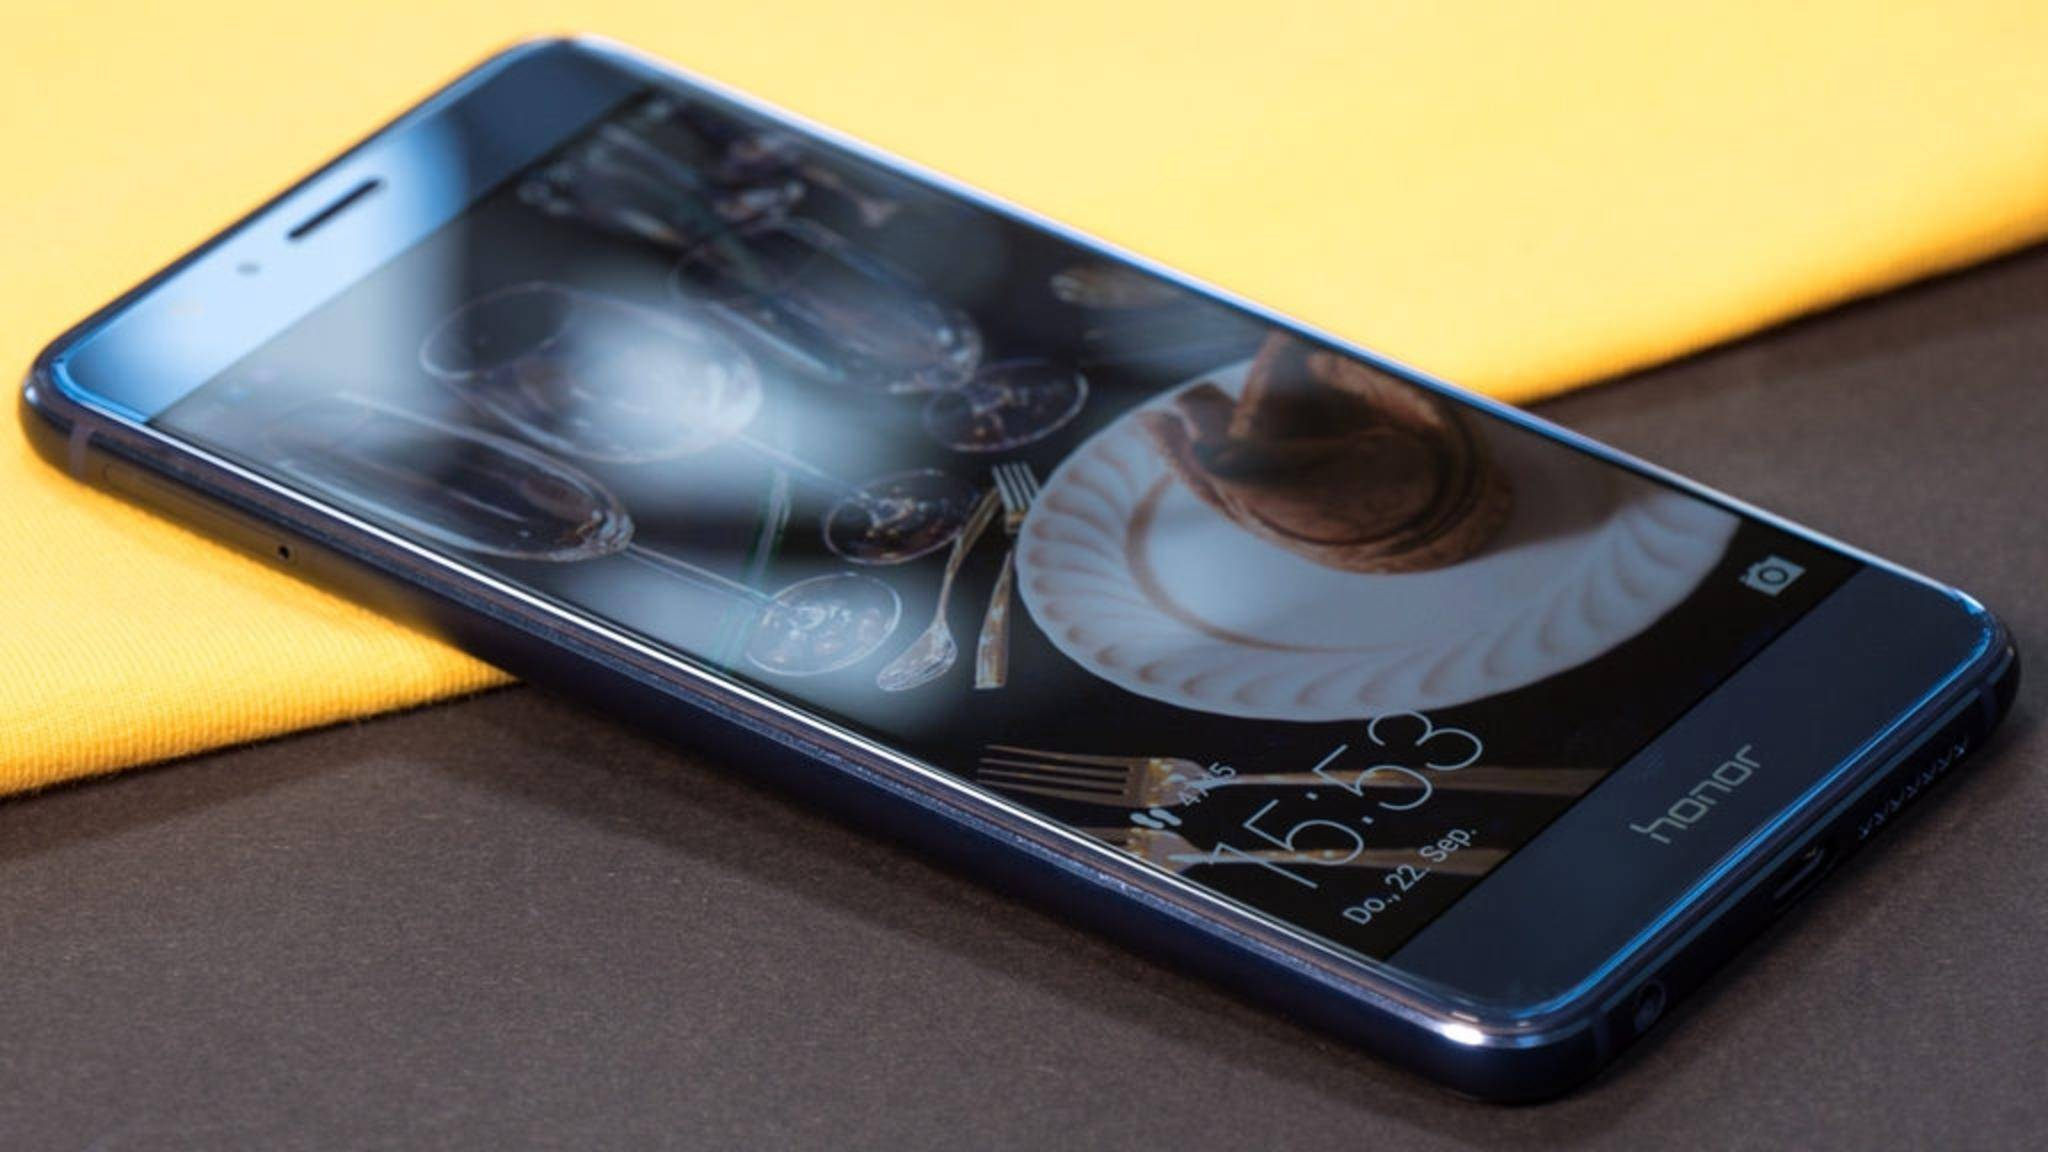 Das Honor 8 bekommt Android 7.0 Nougat.